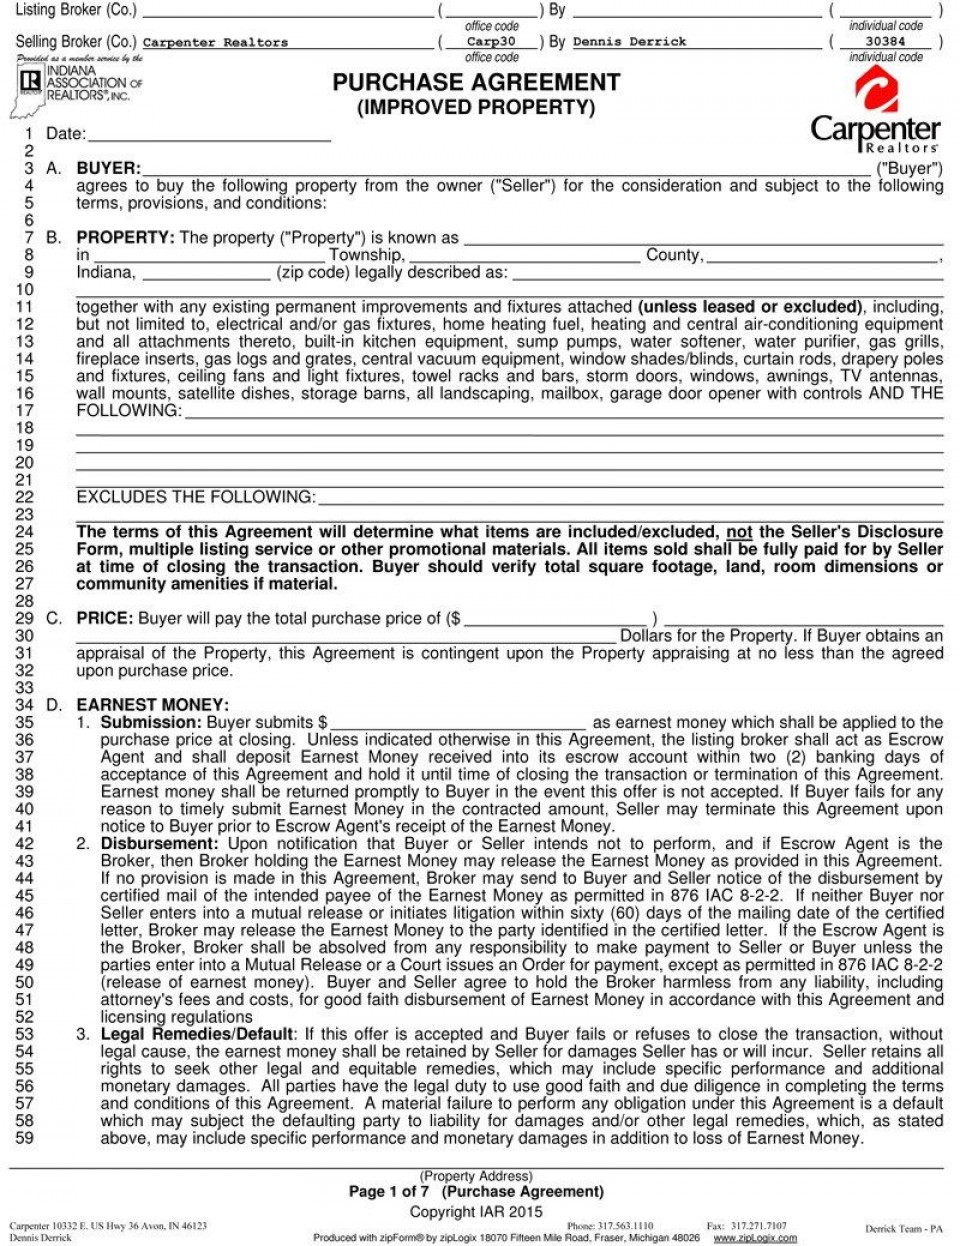 003 Wonderful Home Purchase Agreement Template Michigan Picture 960